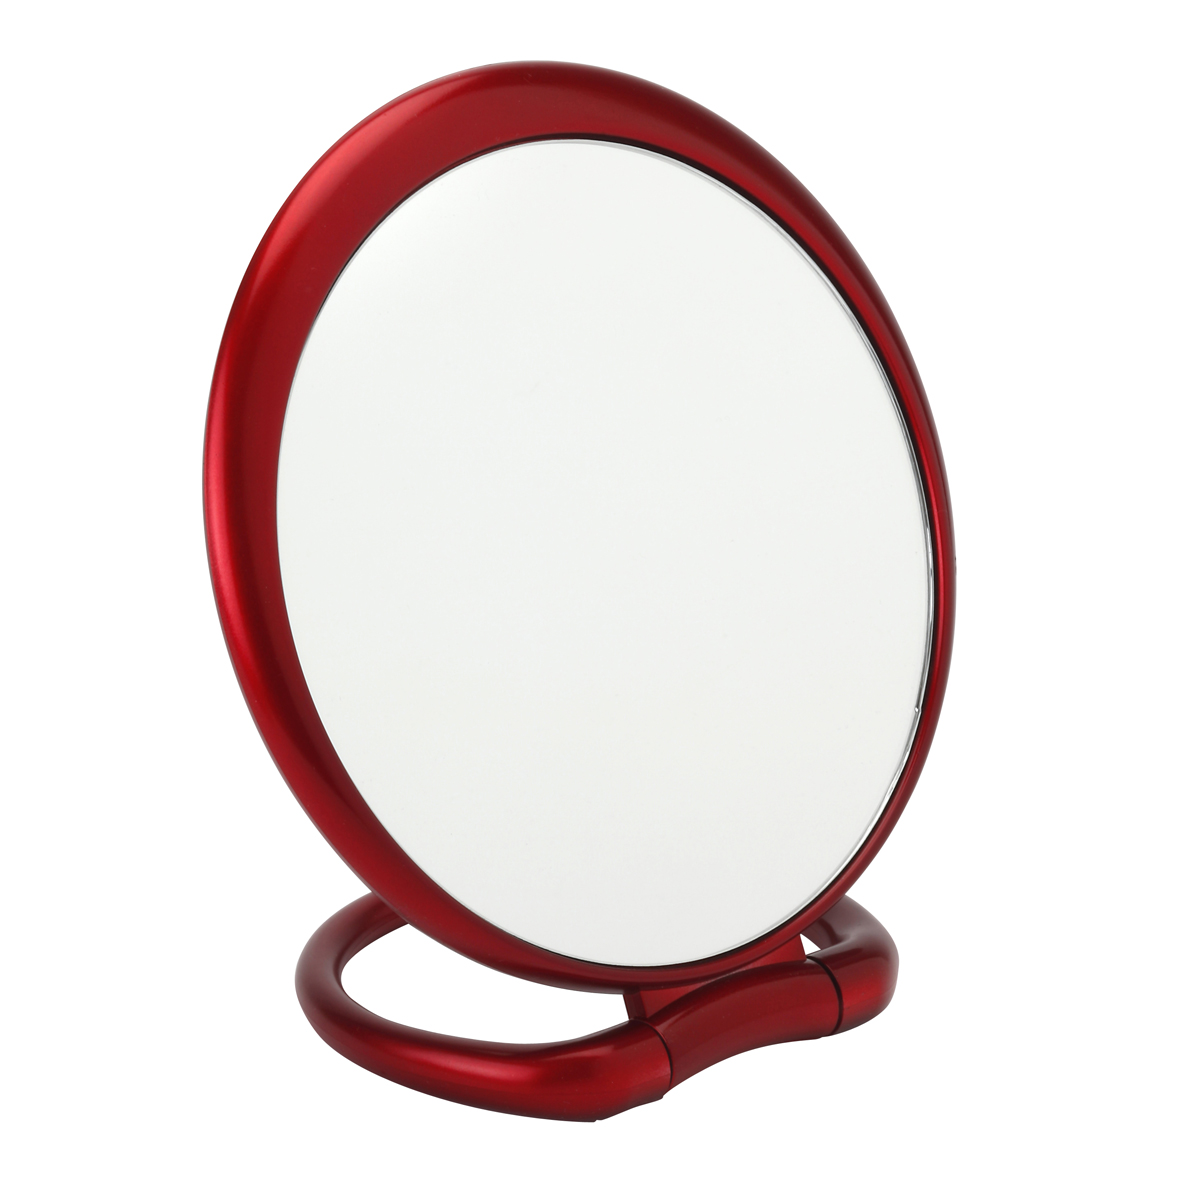 1200 963 13 red - Travel Mirror Red - 96313RED